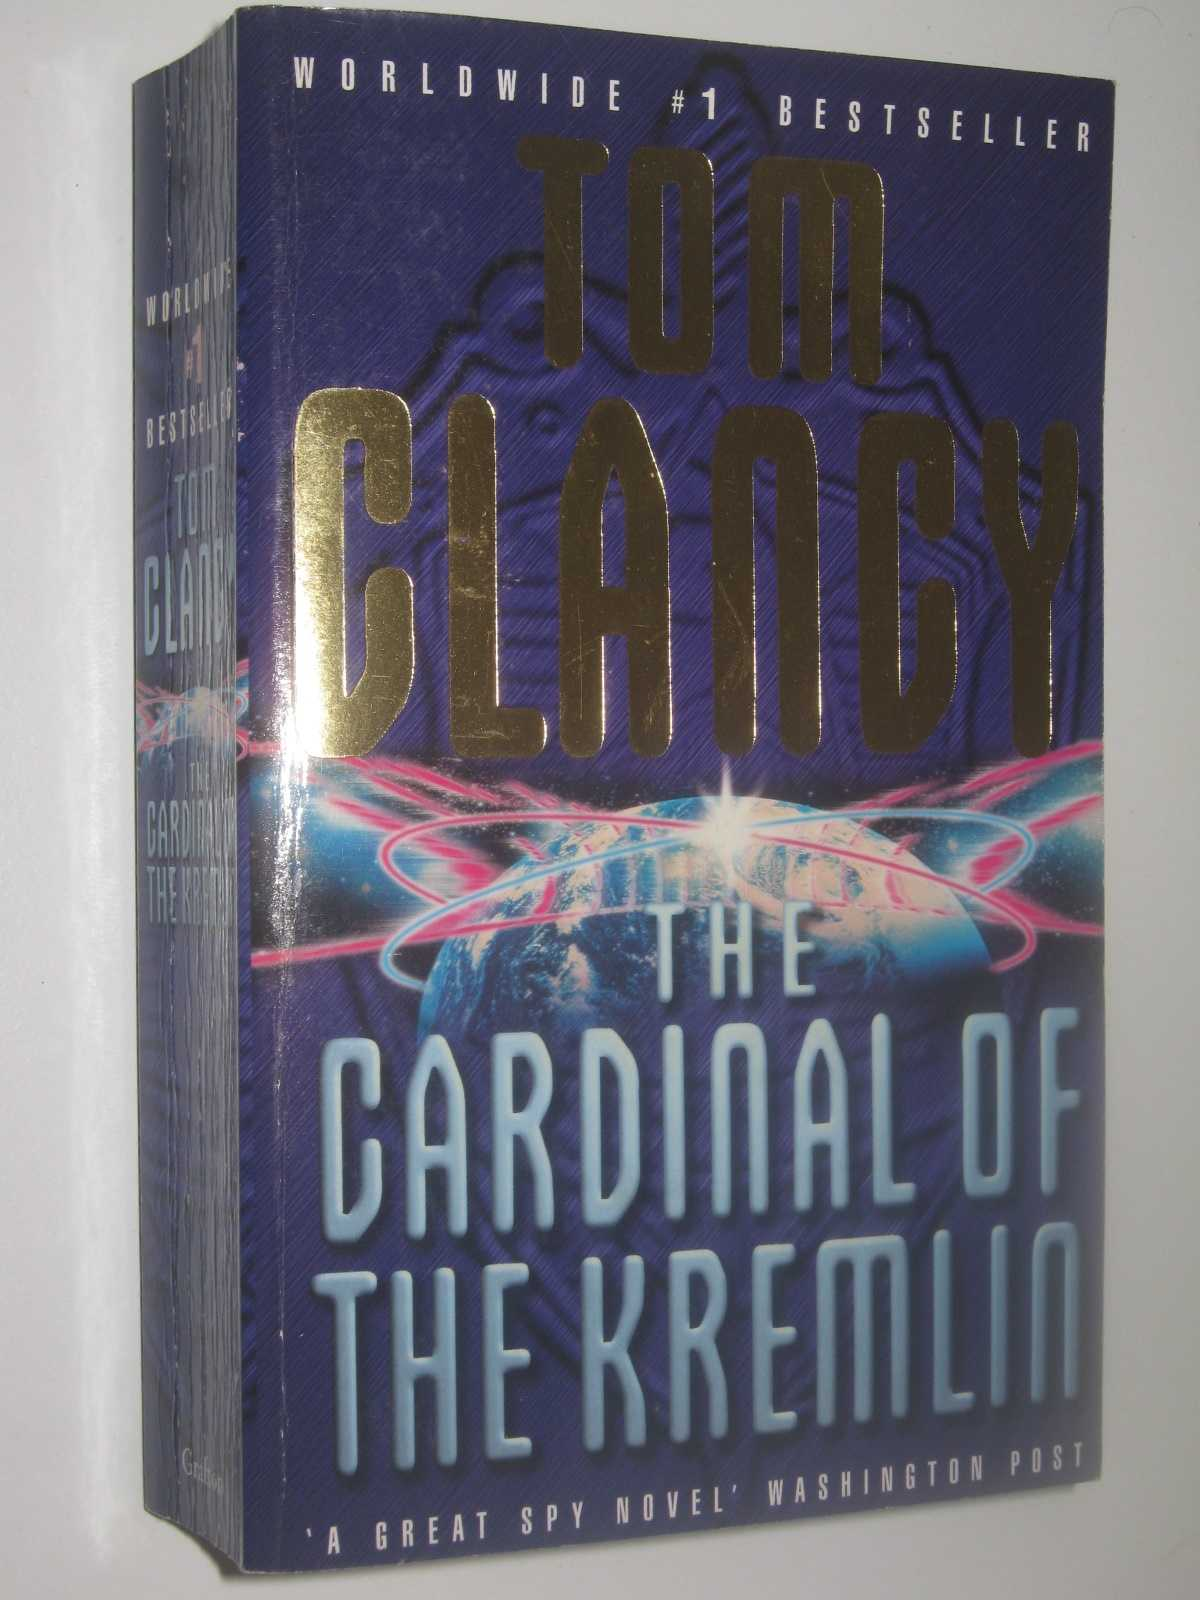 The Cardinal of the Kremlin, Clancy, Tom